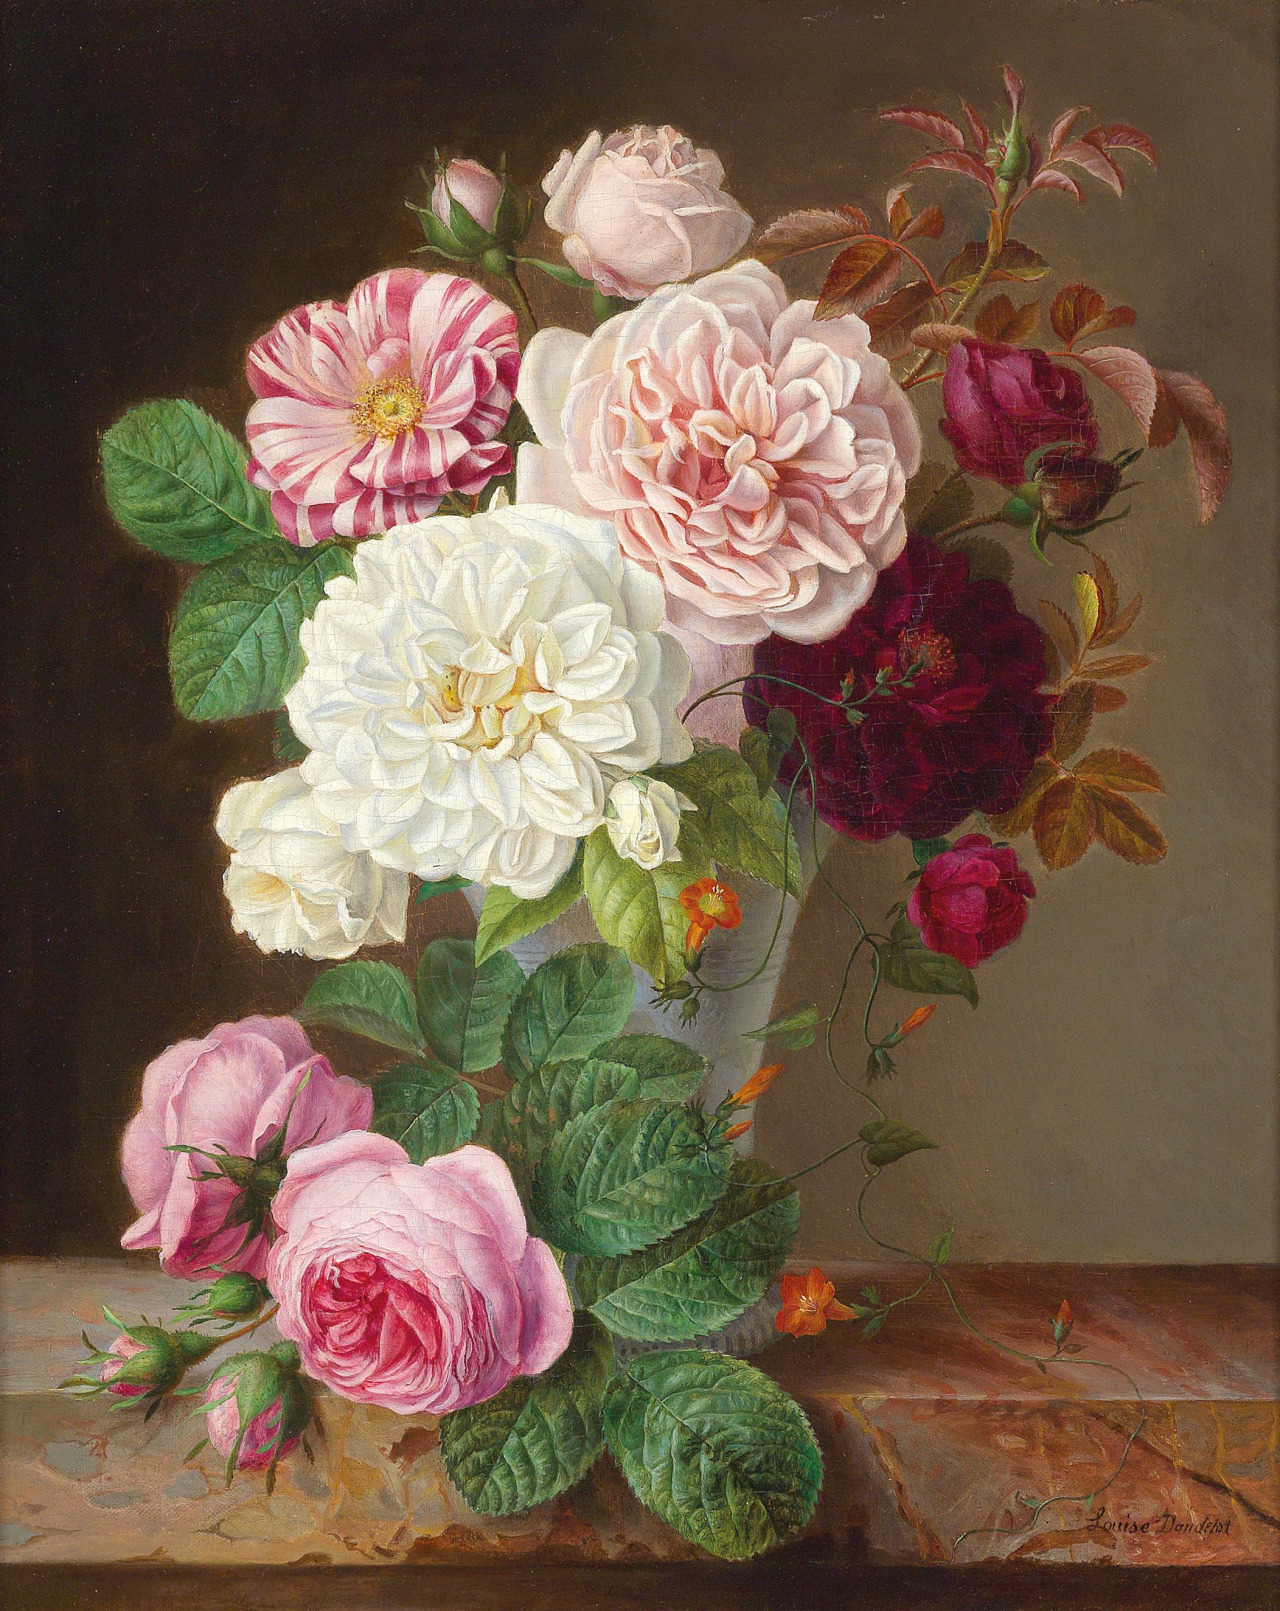 A Beautiful Bouquet by Louise Dandelot, 1866